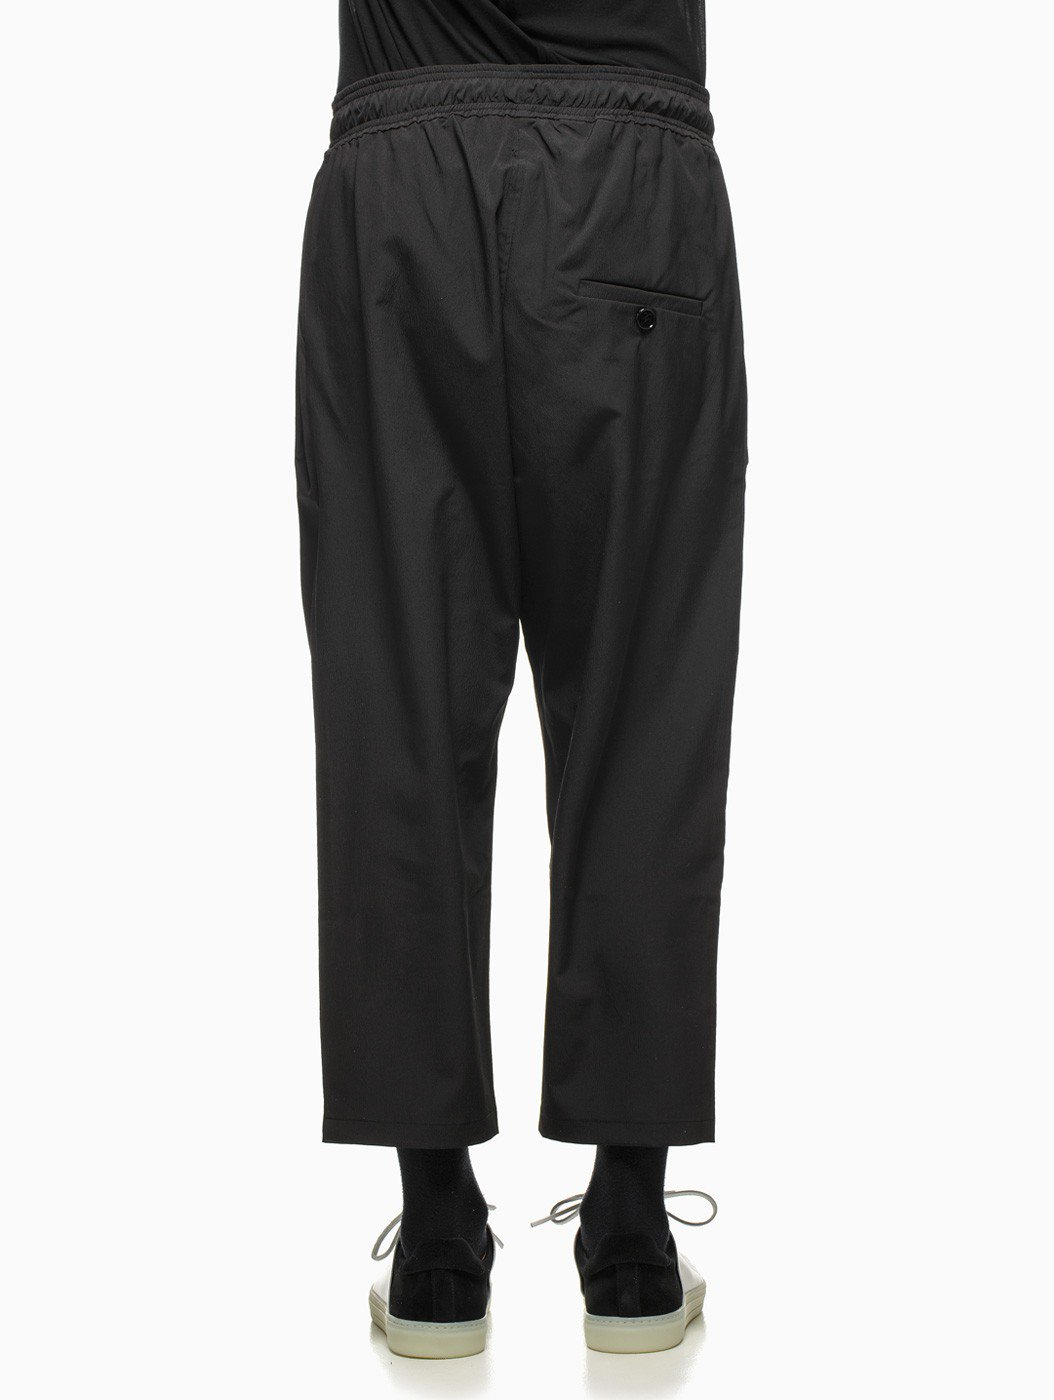 Silent - Damir Doma Pheda 3/4 Trousers in Black for Men